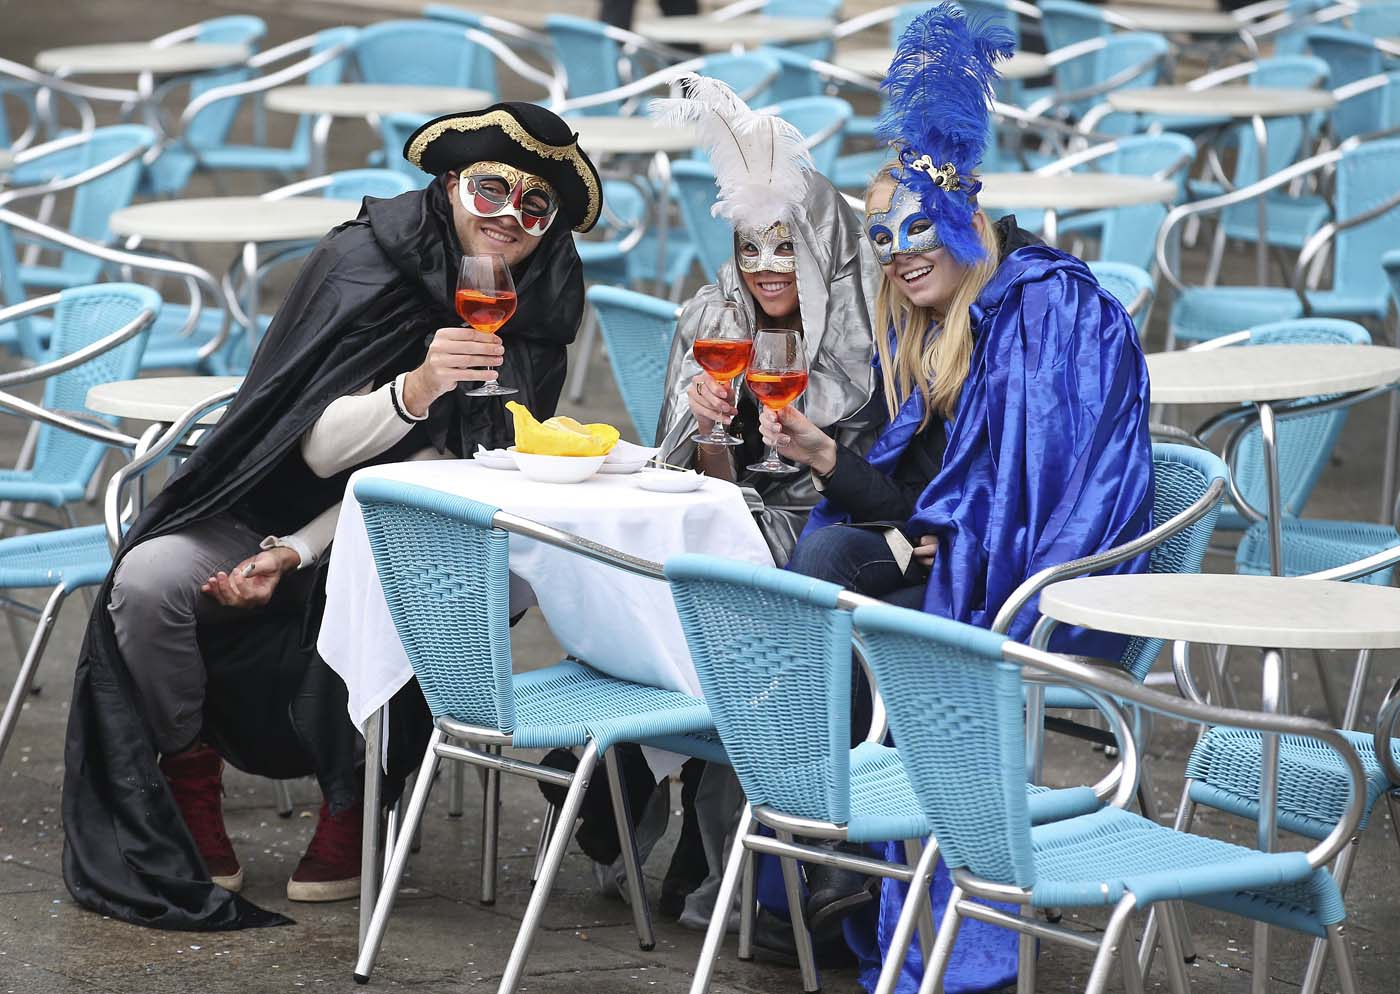 Masked revellers pose with their drinks in San Marco Piazza during the Venice Carnival, January 30, 2016. REUTERS/Alessandro Bianchi